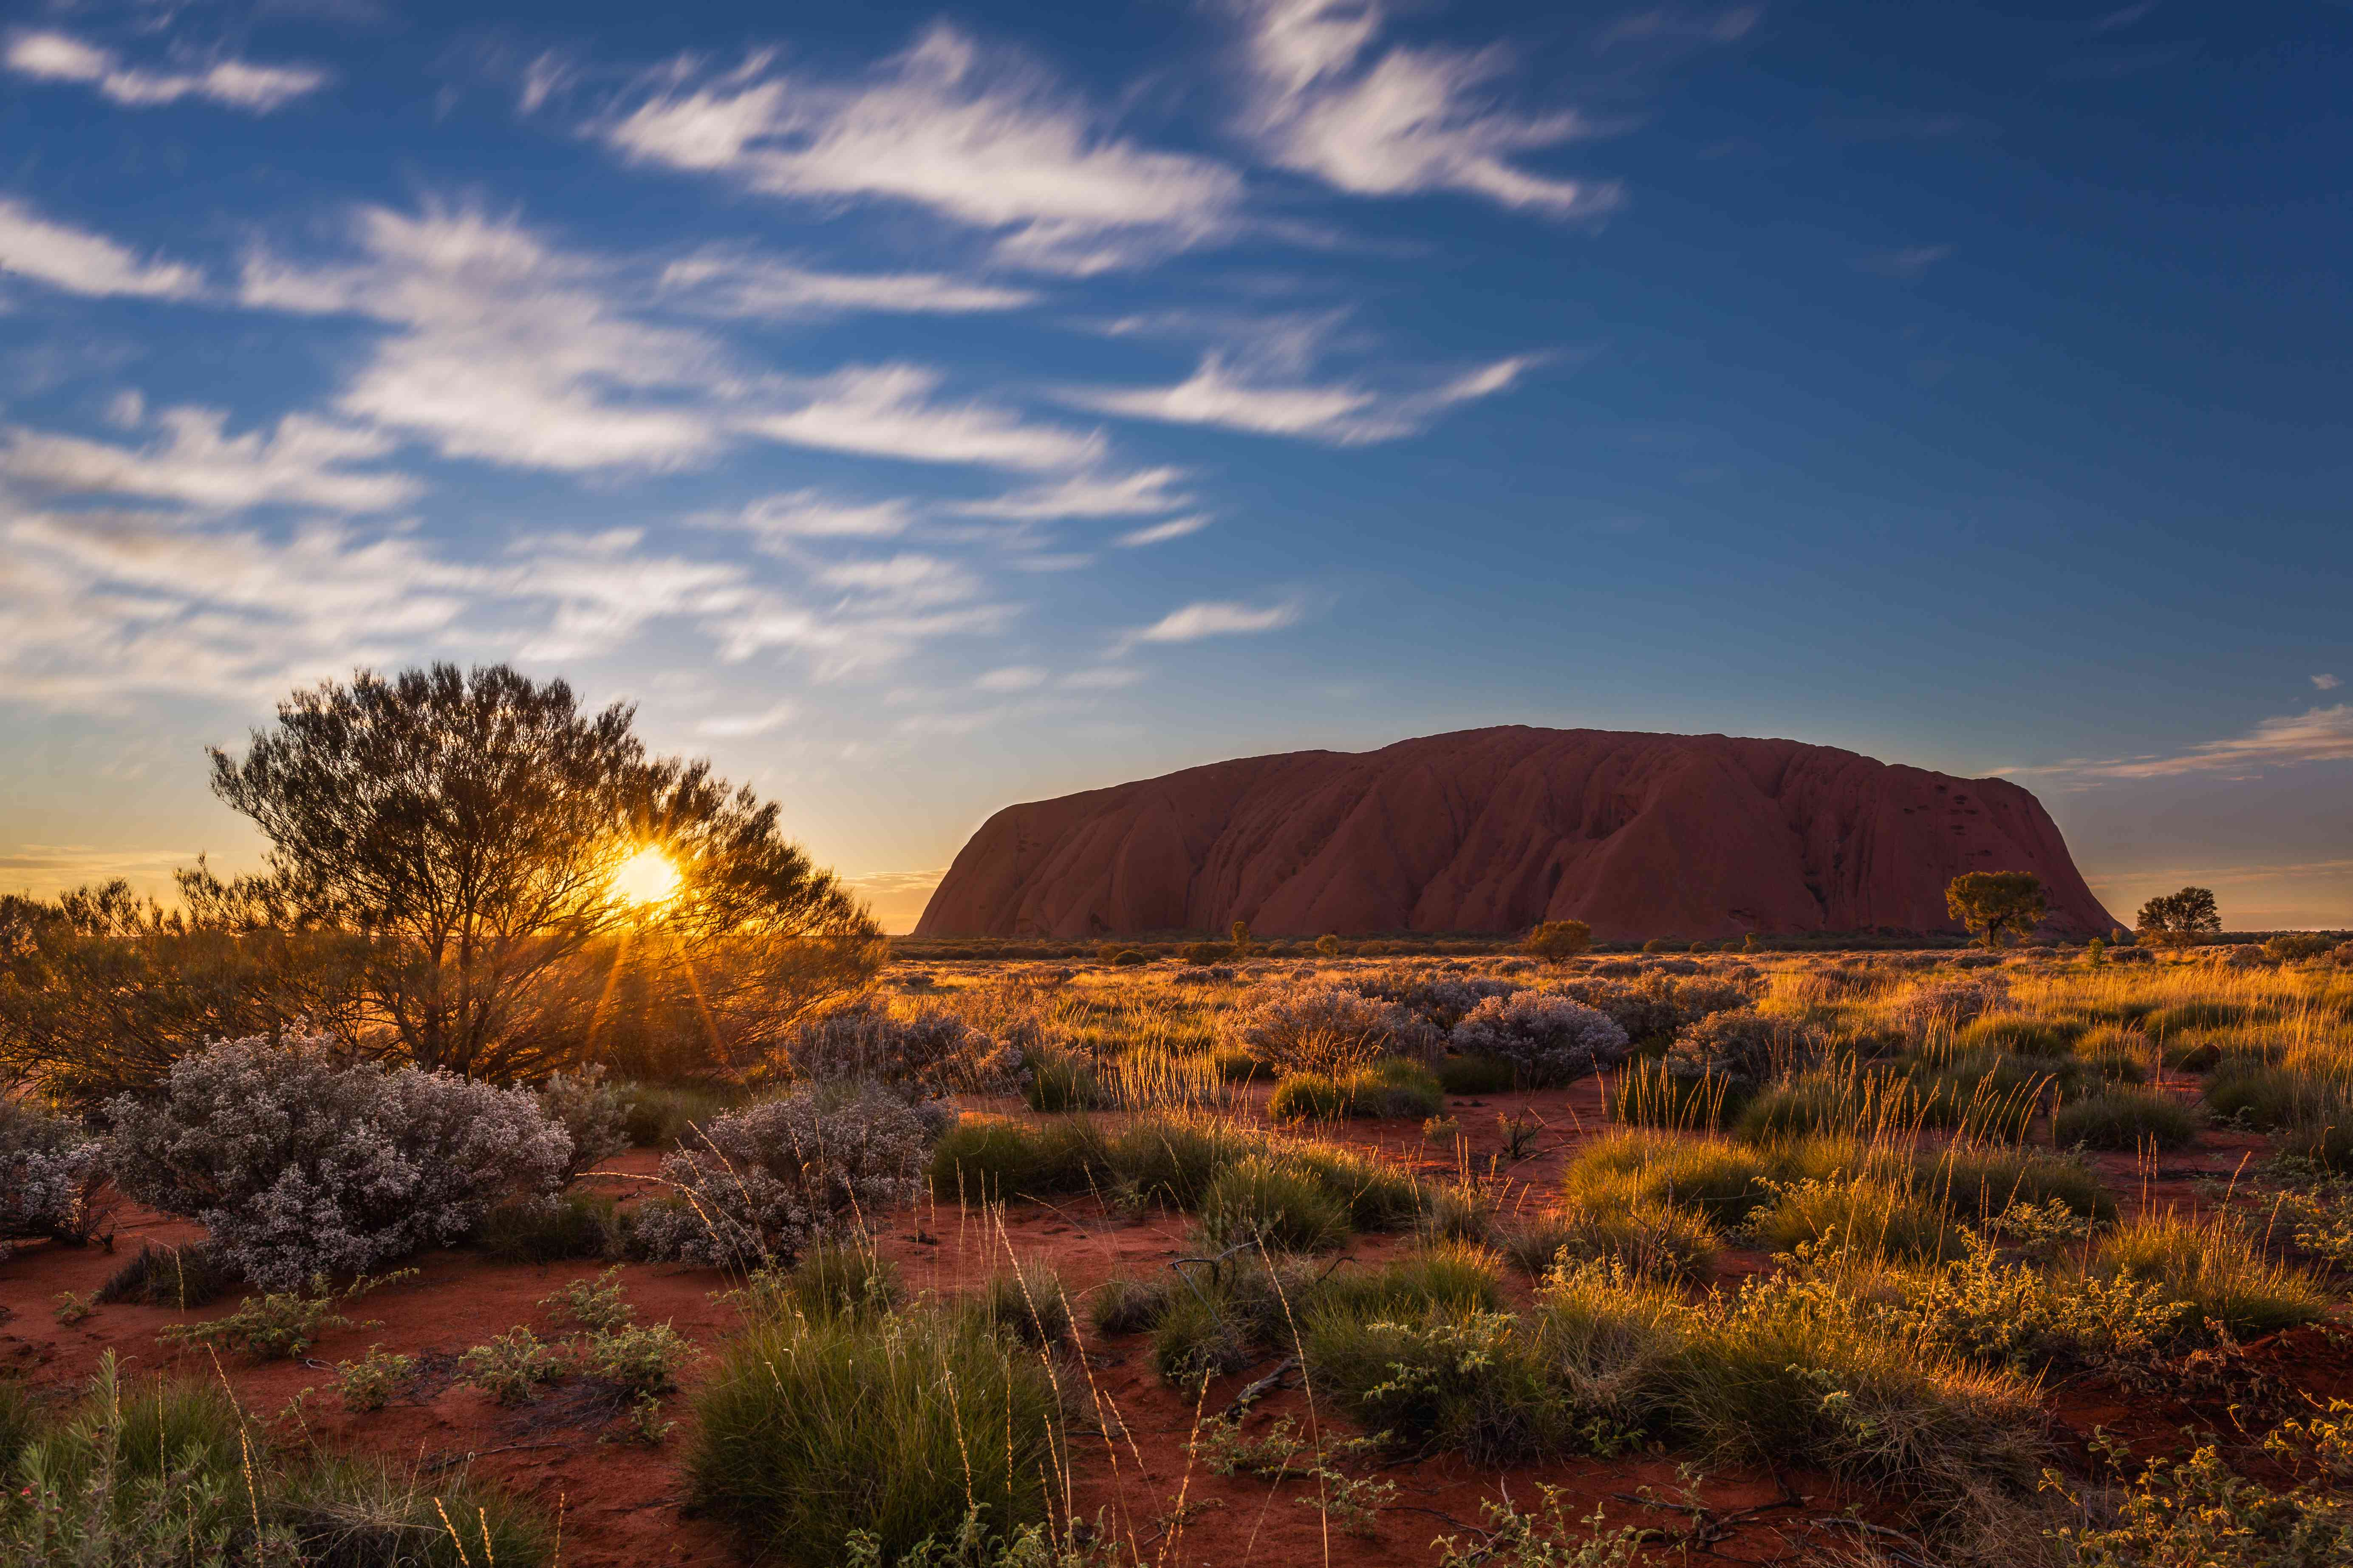 Sun rising over Uluru, also known as Ayers Rock, a large sandstone rock formation in the southern part of the Northern Territory, central Australia.